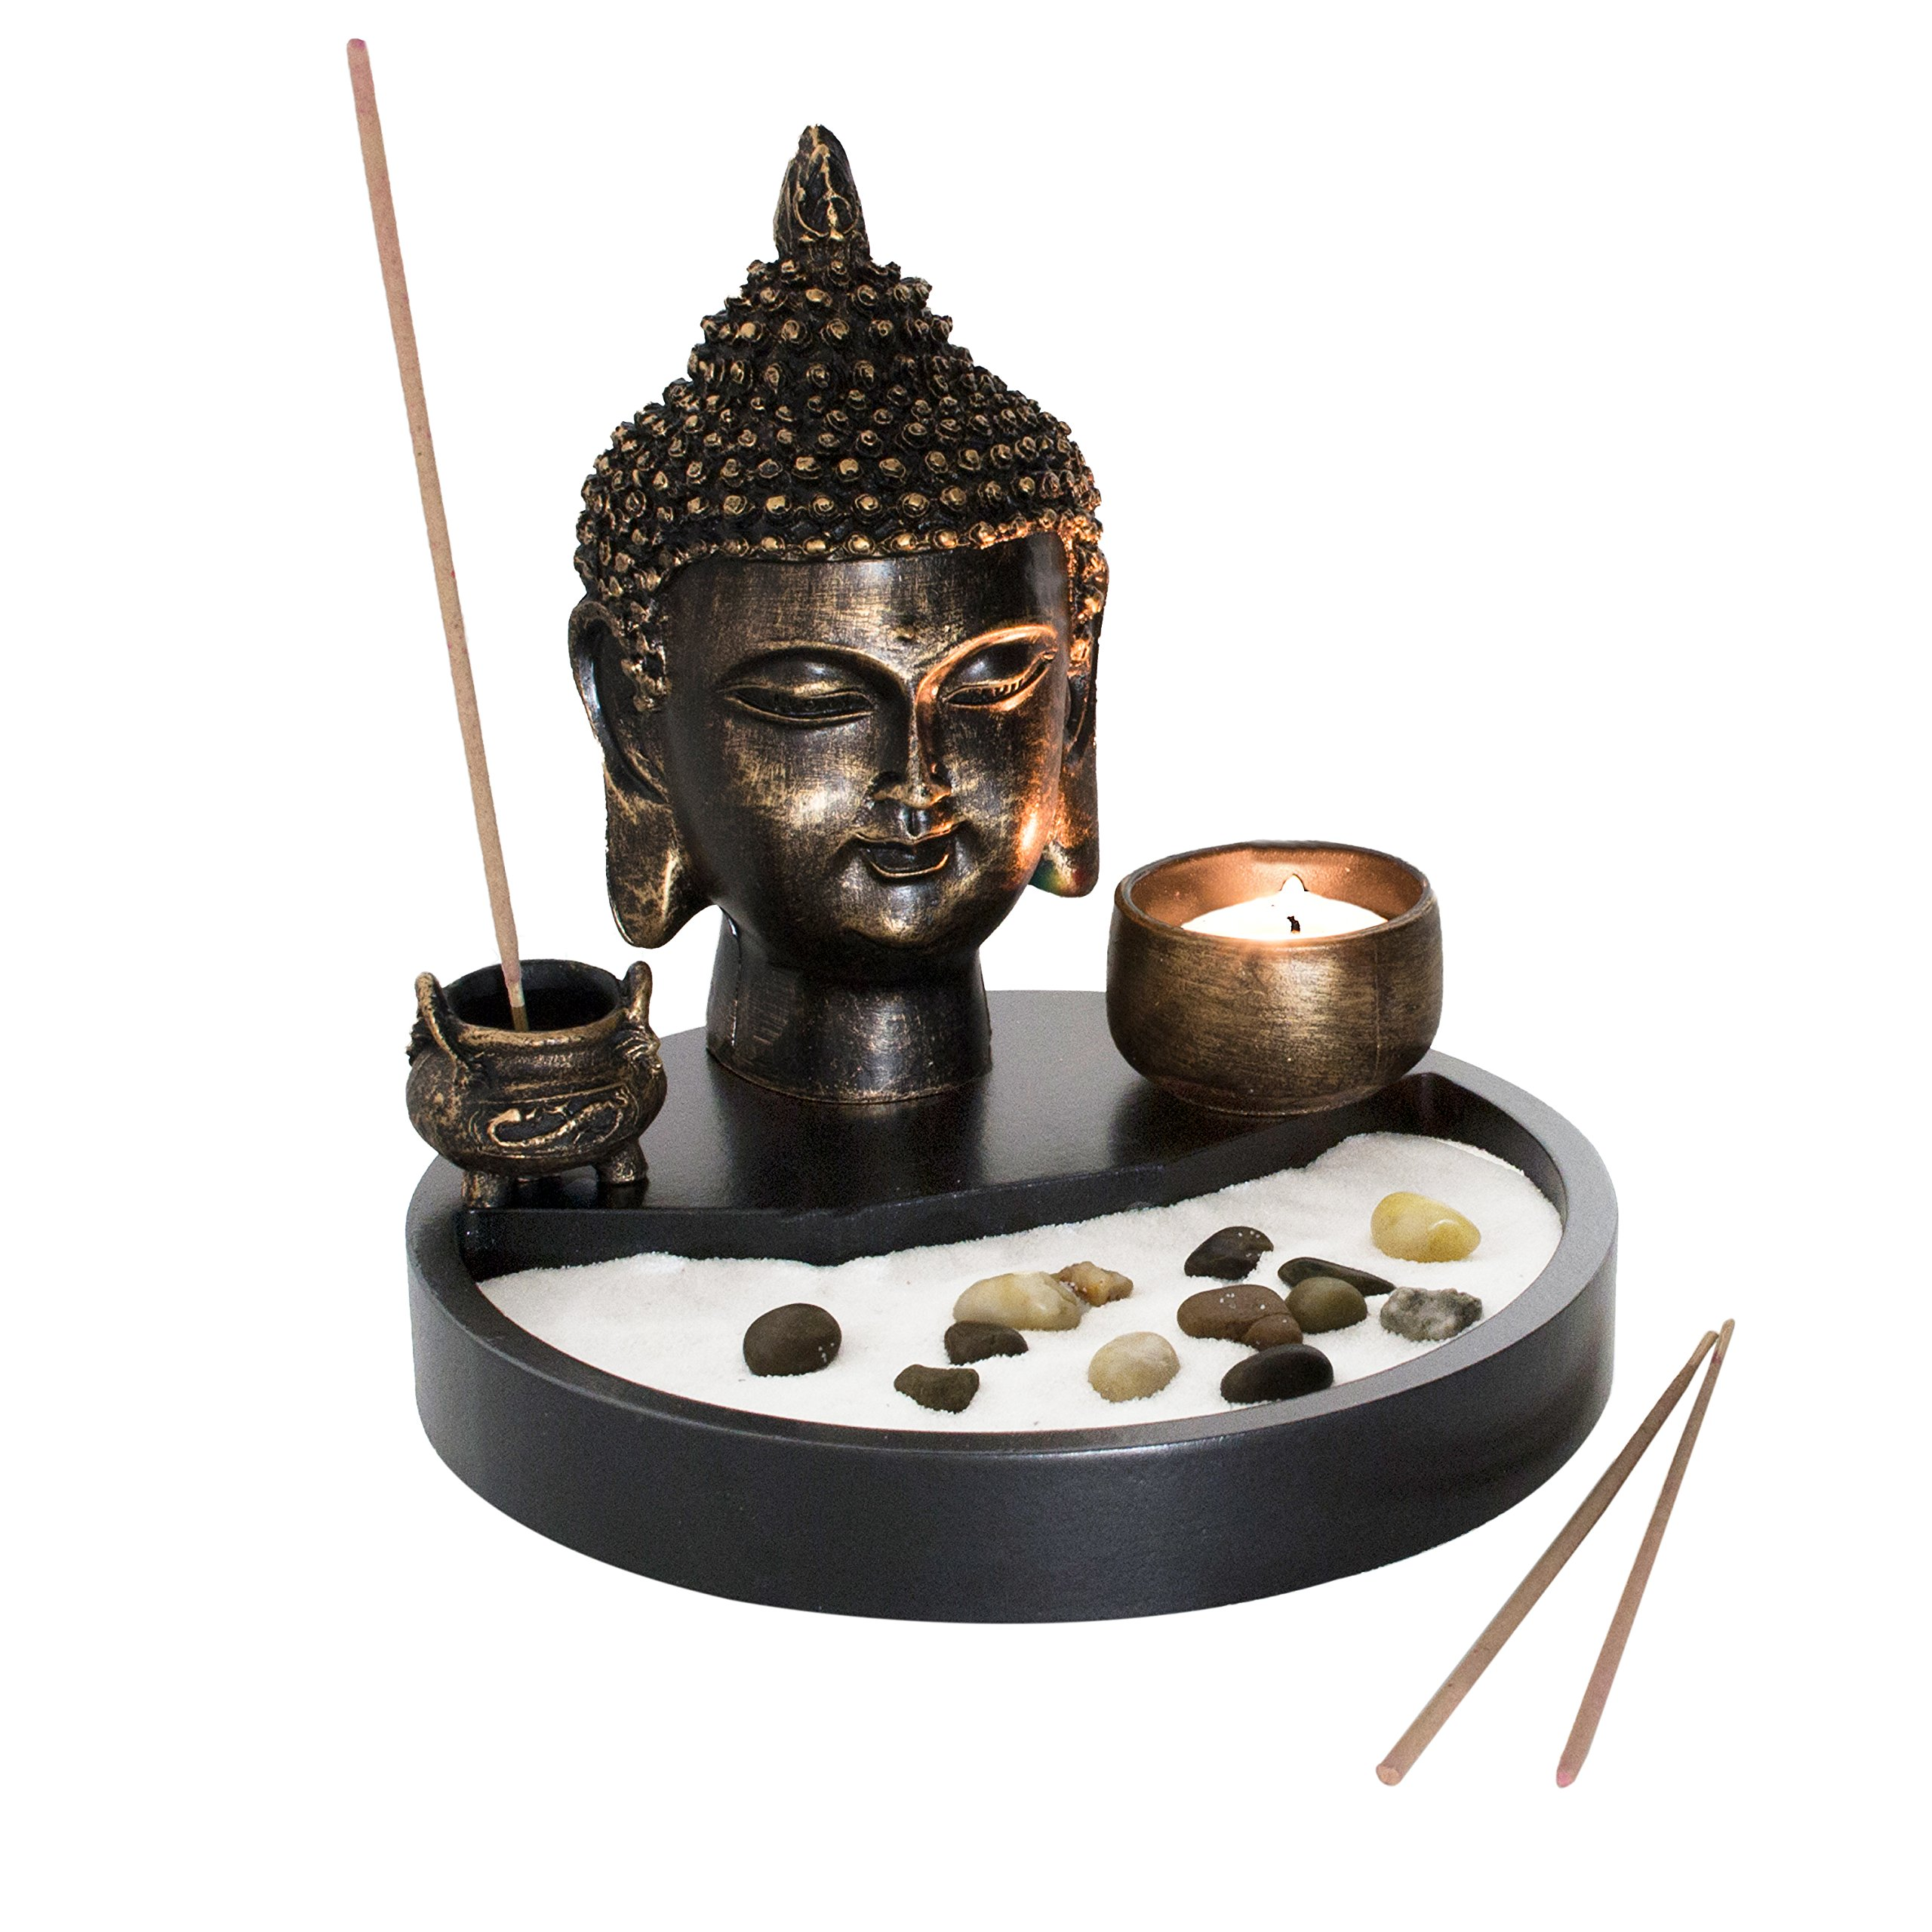 Buddha Head Statue Tabletop Zen Garden Kit with Incense Burner and Tealight Candle Holder by MyGift